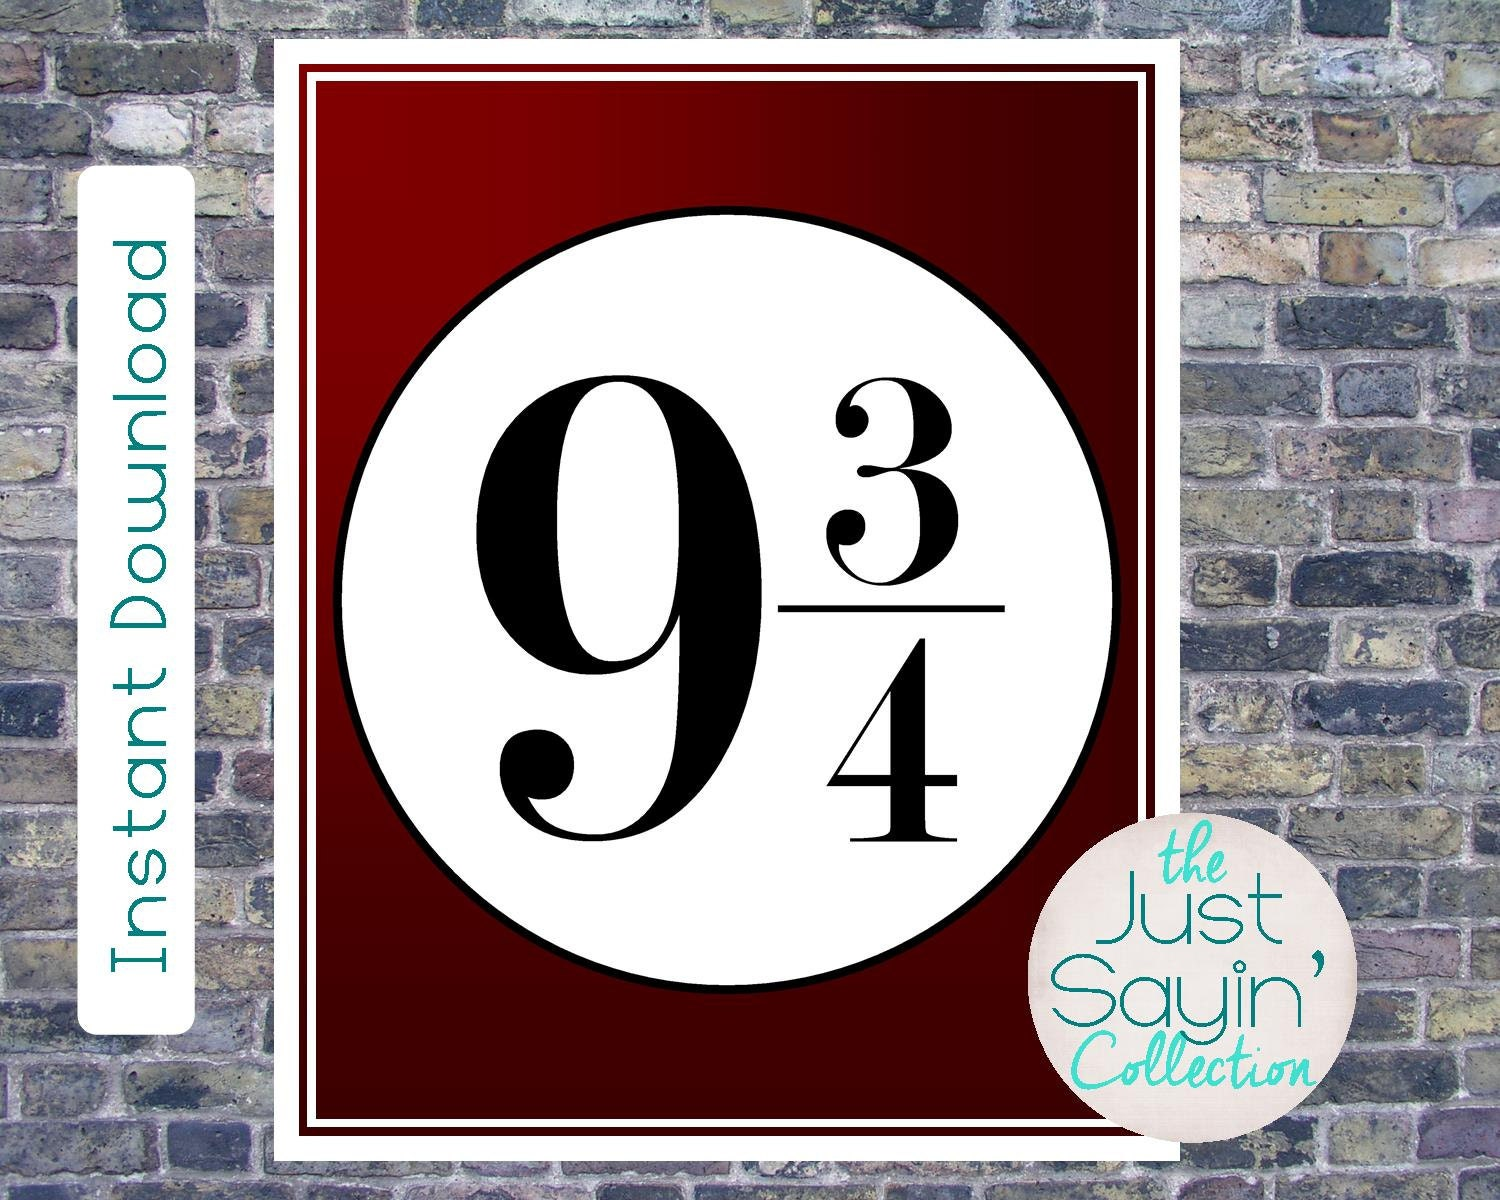 photo about Platform 9 3 4 Sign Printable identify System 9 34 indication Lots of totally free printables for a Harry